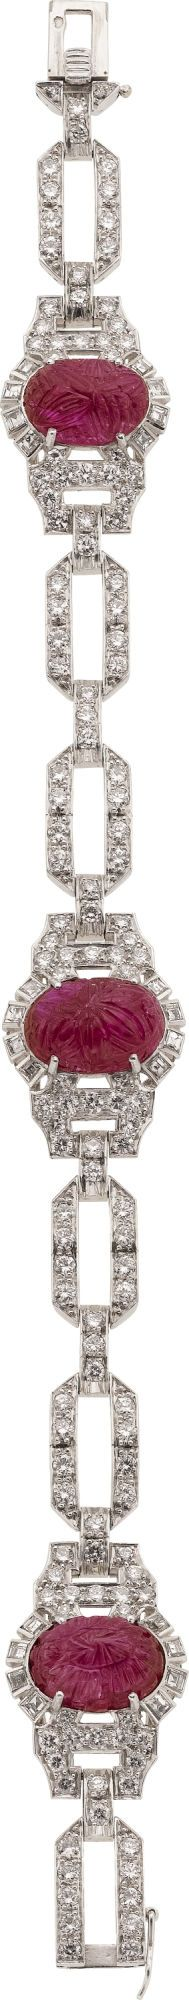 Art Deco Ruby, Diamond, Platinum Bracelet